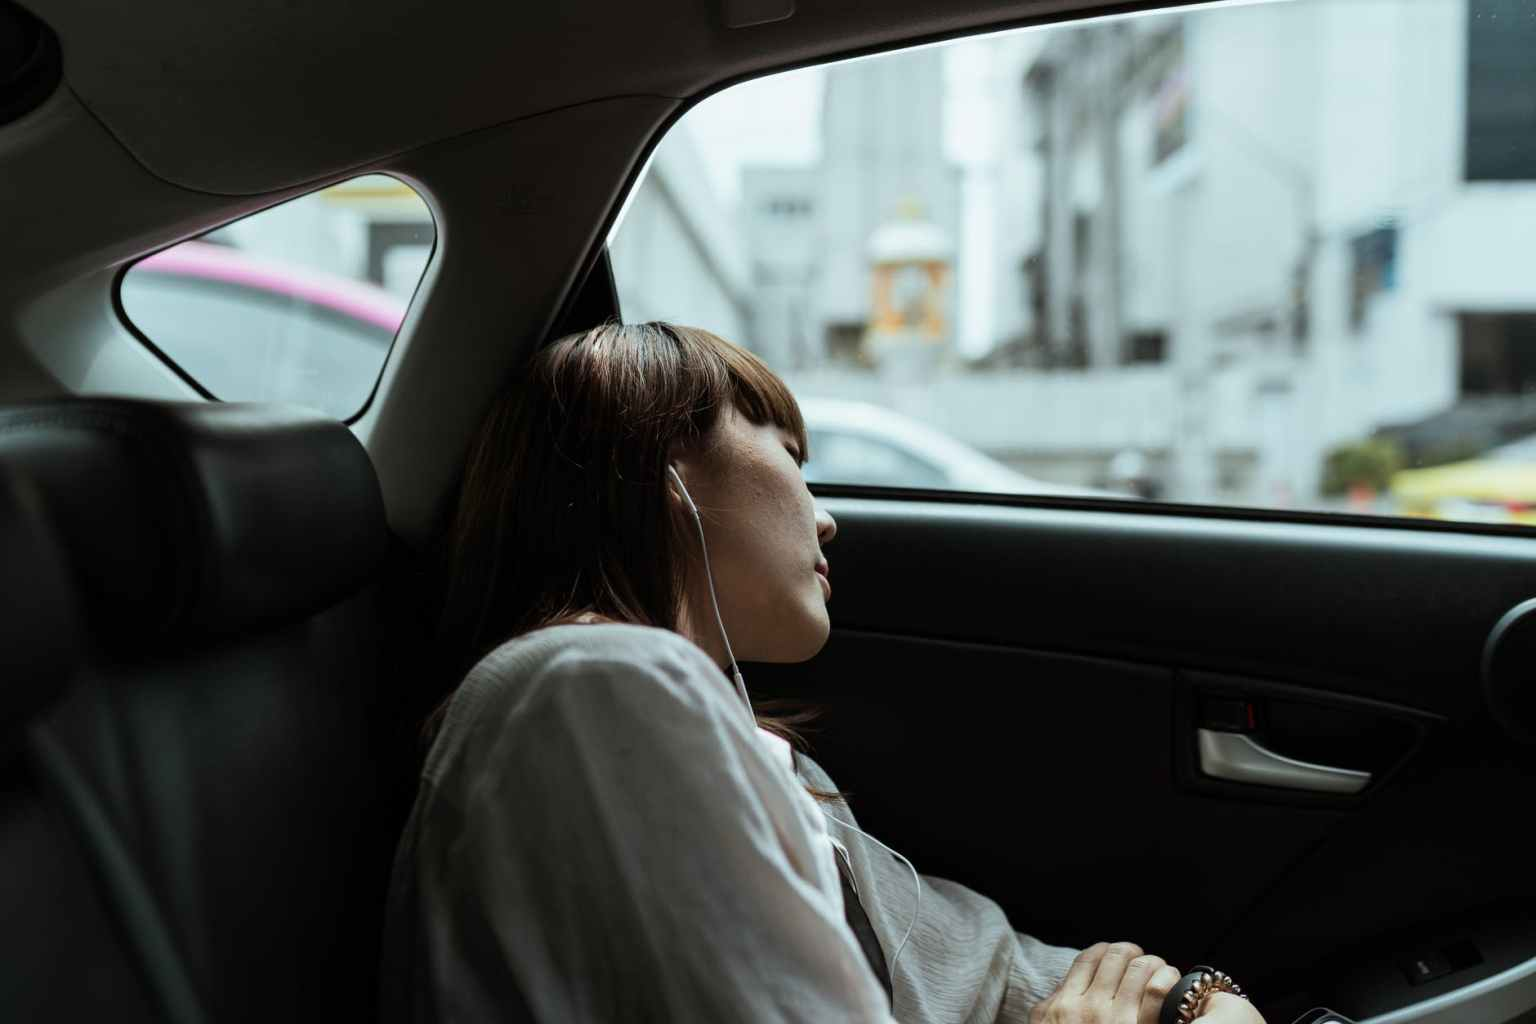 calm woman resting in car backseat with earphones